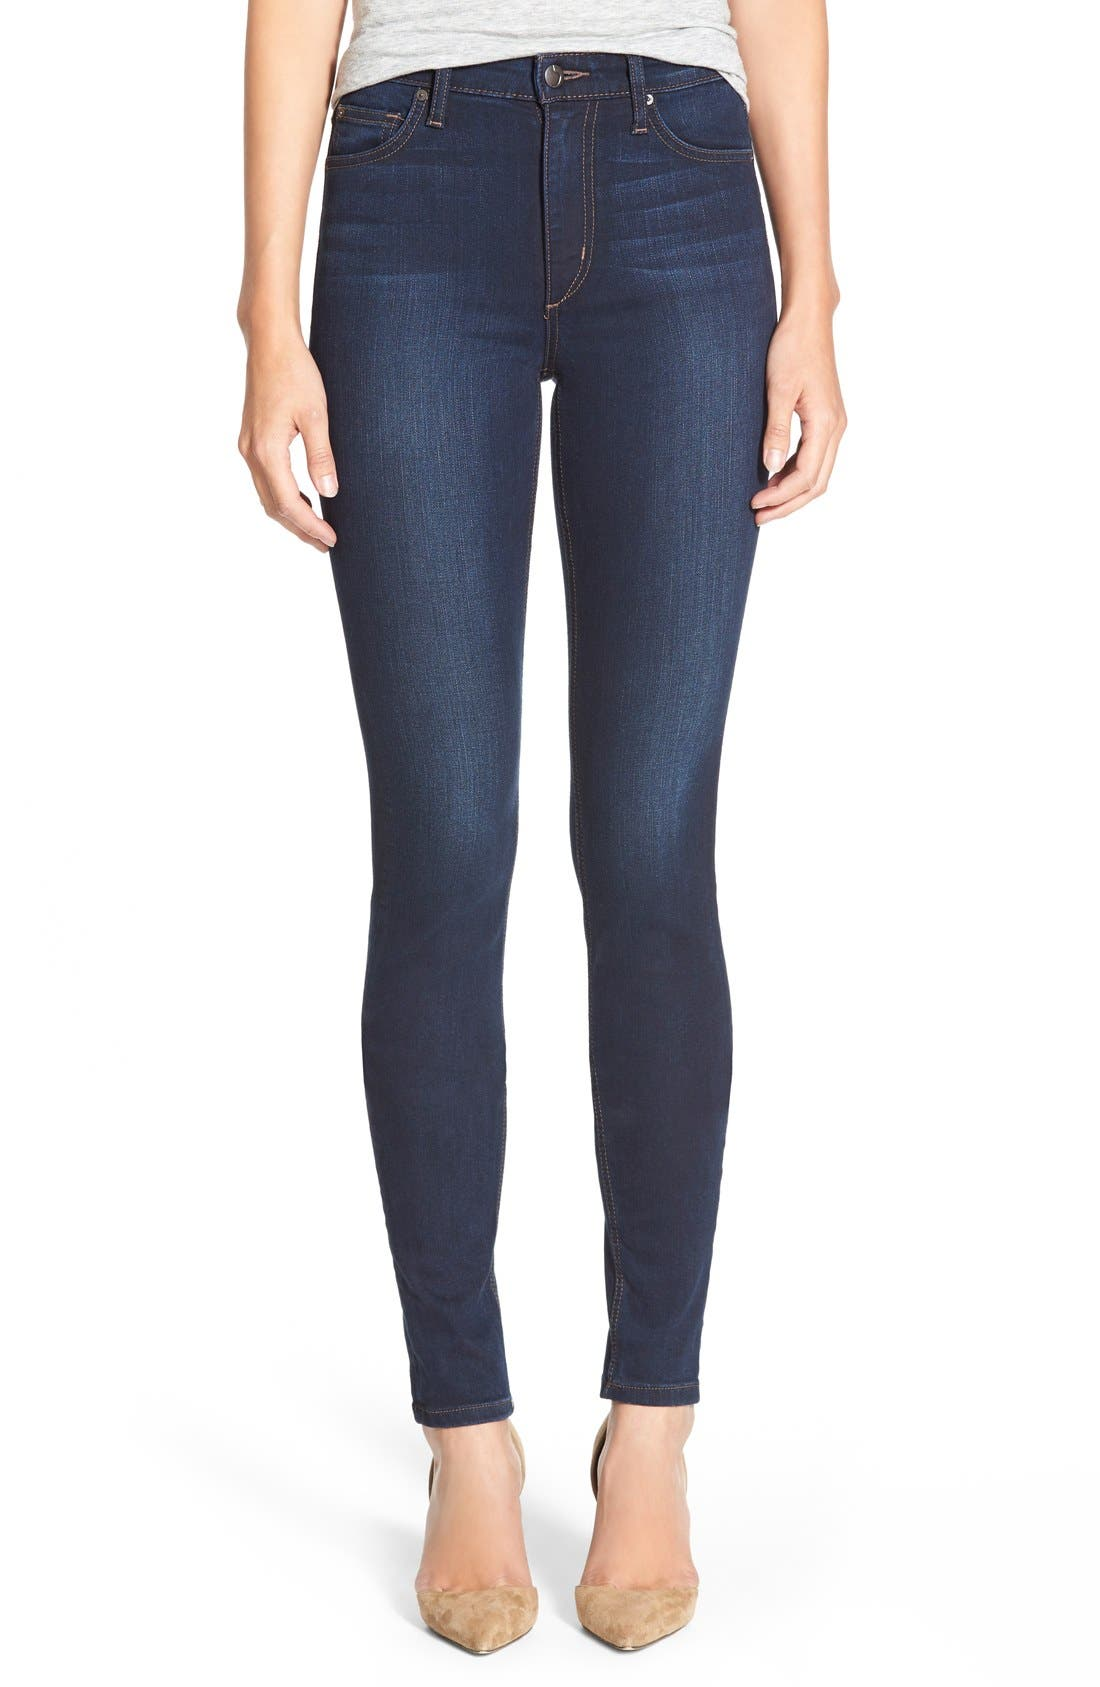 Alternate Image 1 Selected - Joe's 'Flawless -Charlie' High Rise Skinny Jeans (Cecily)